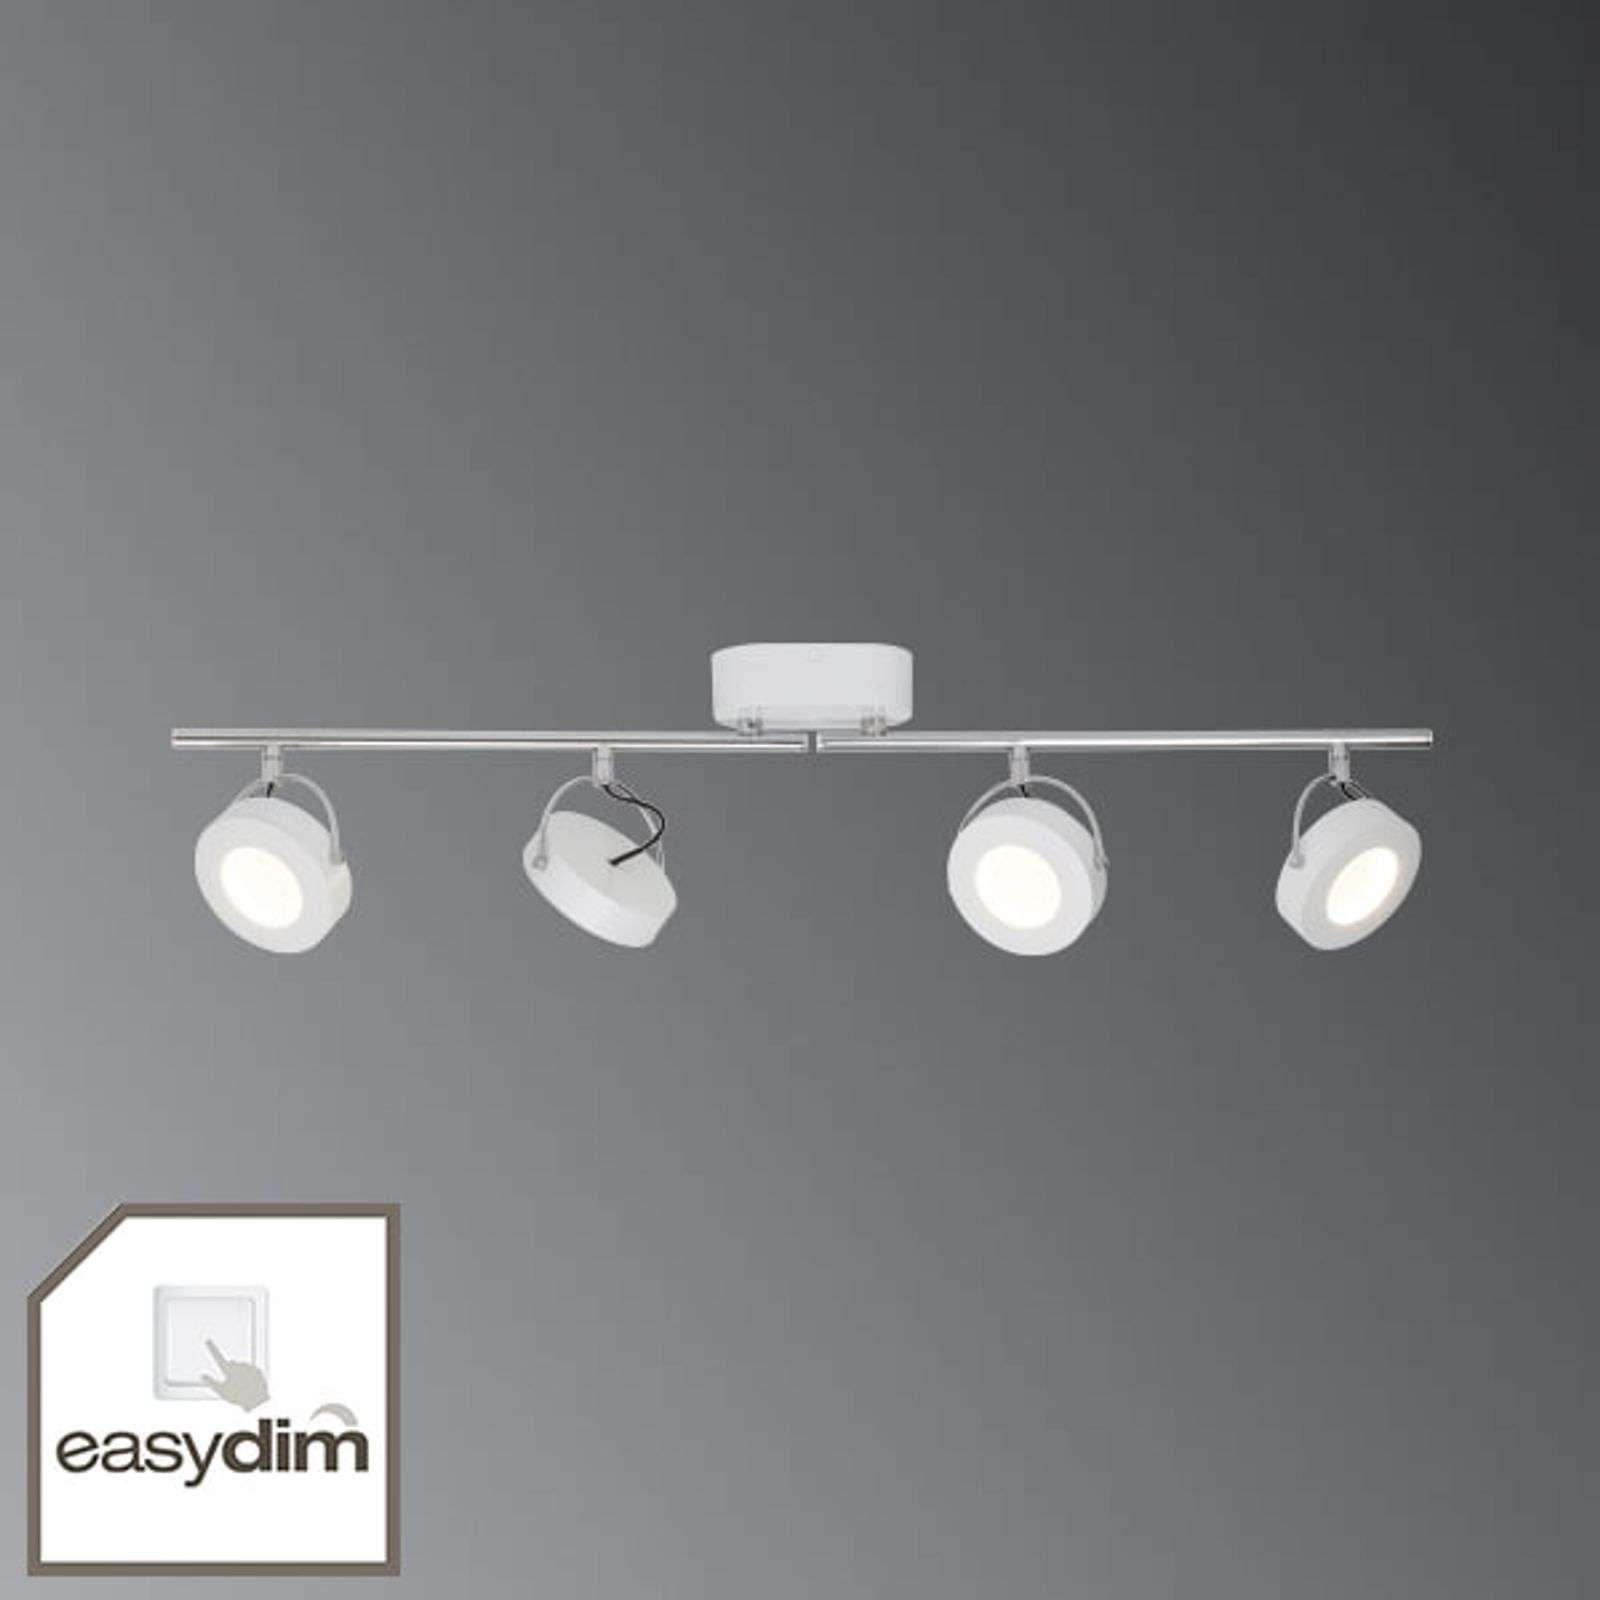 Plafonnier LED Allora blanc 4 lampes - EasyDim